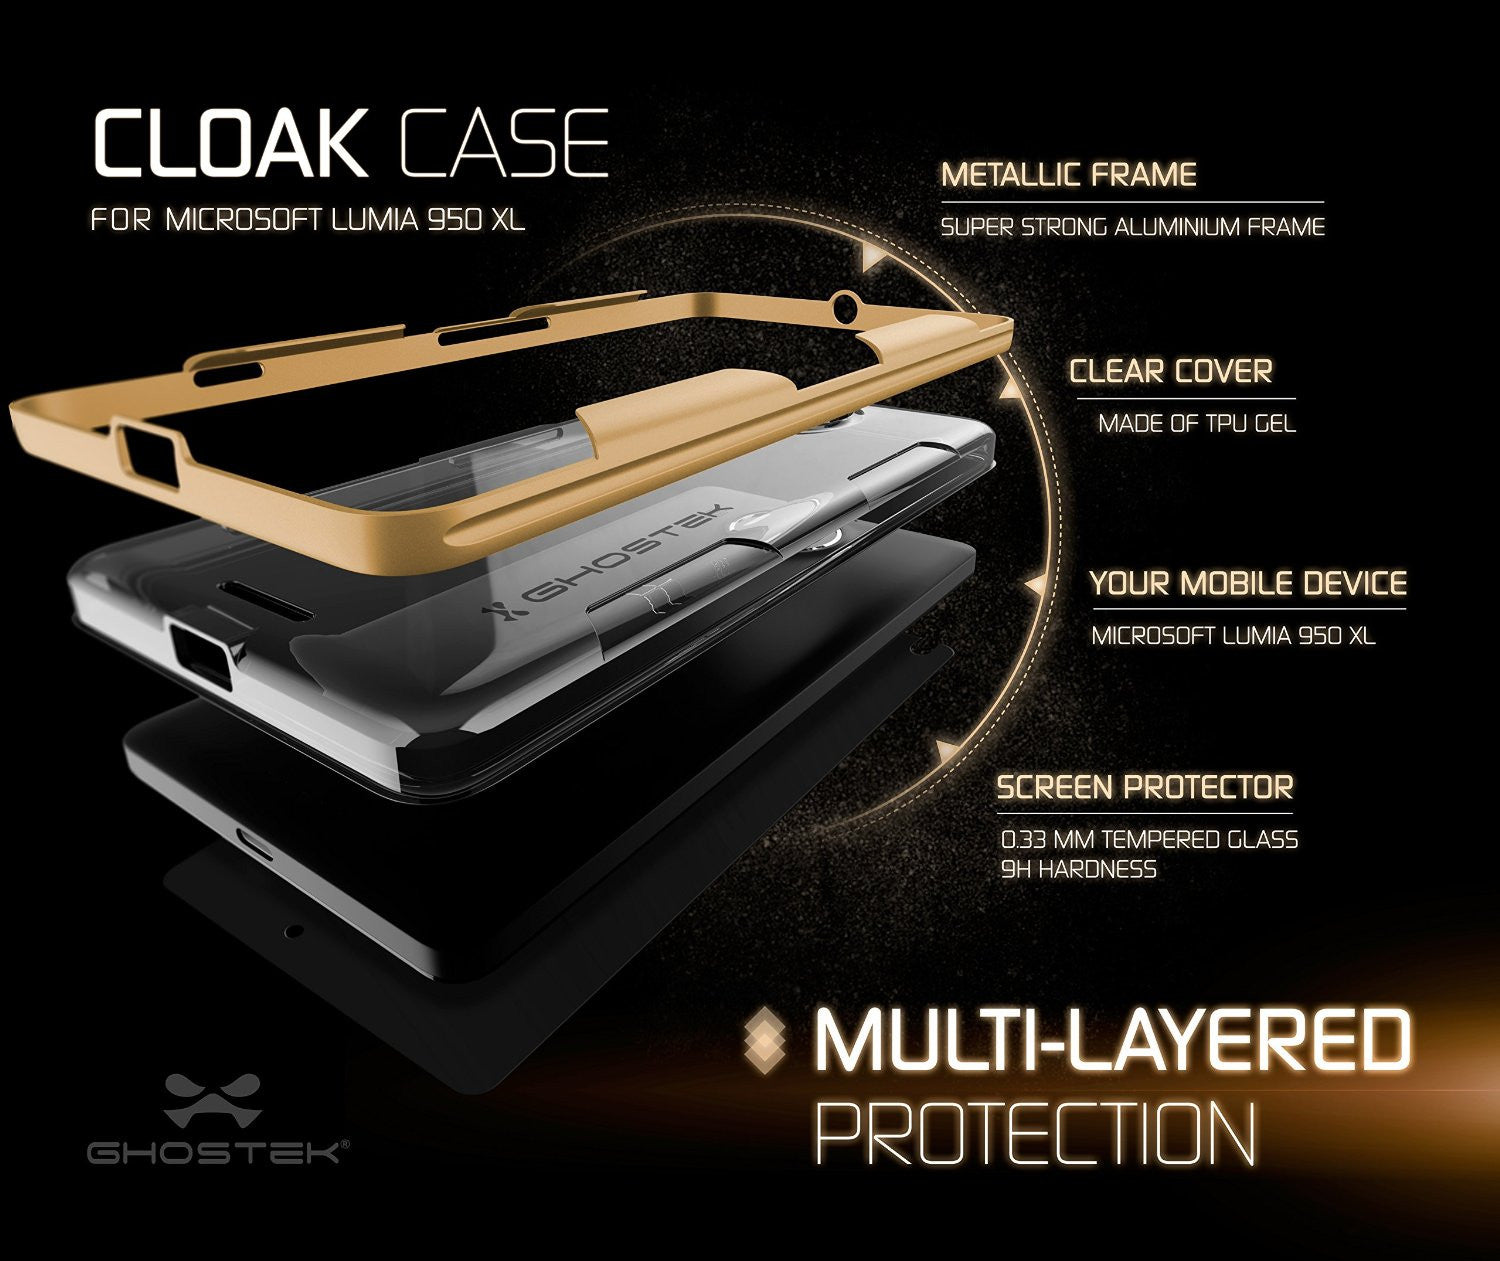 Microsoft 950 XL Case, Ghostek® Cloak Gold Slim Hybrid Impact Armor | Lifetime Warranty Exchange